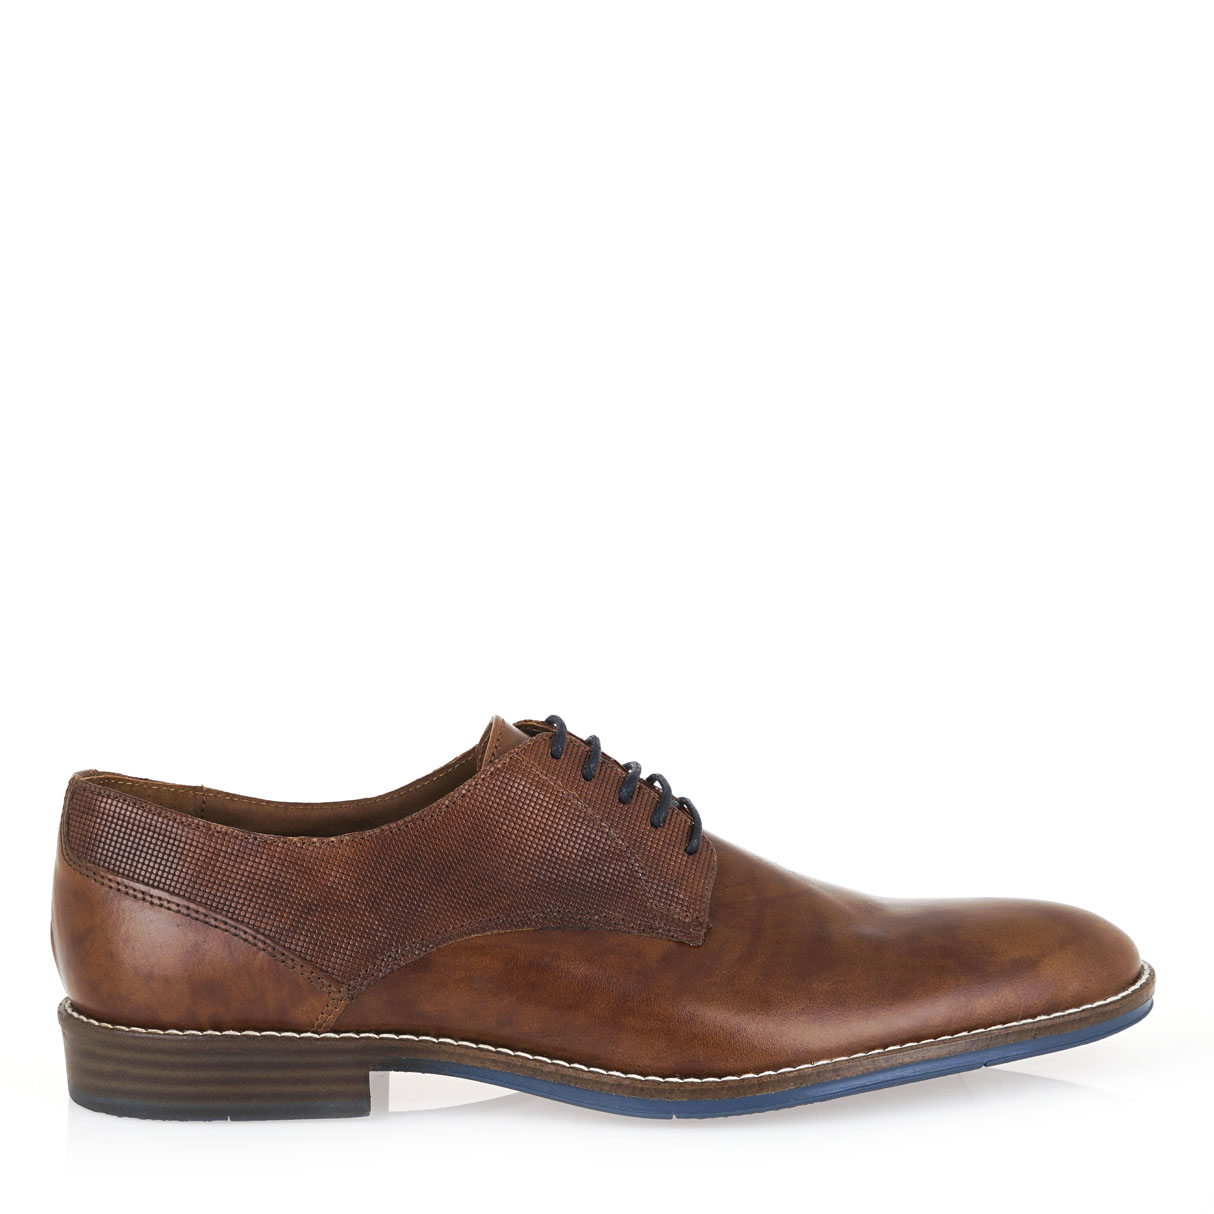 LACE-UP SHOES σχέδιο: I579V0121 outlet   ανδρικα   lace up shoes